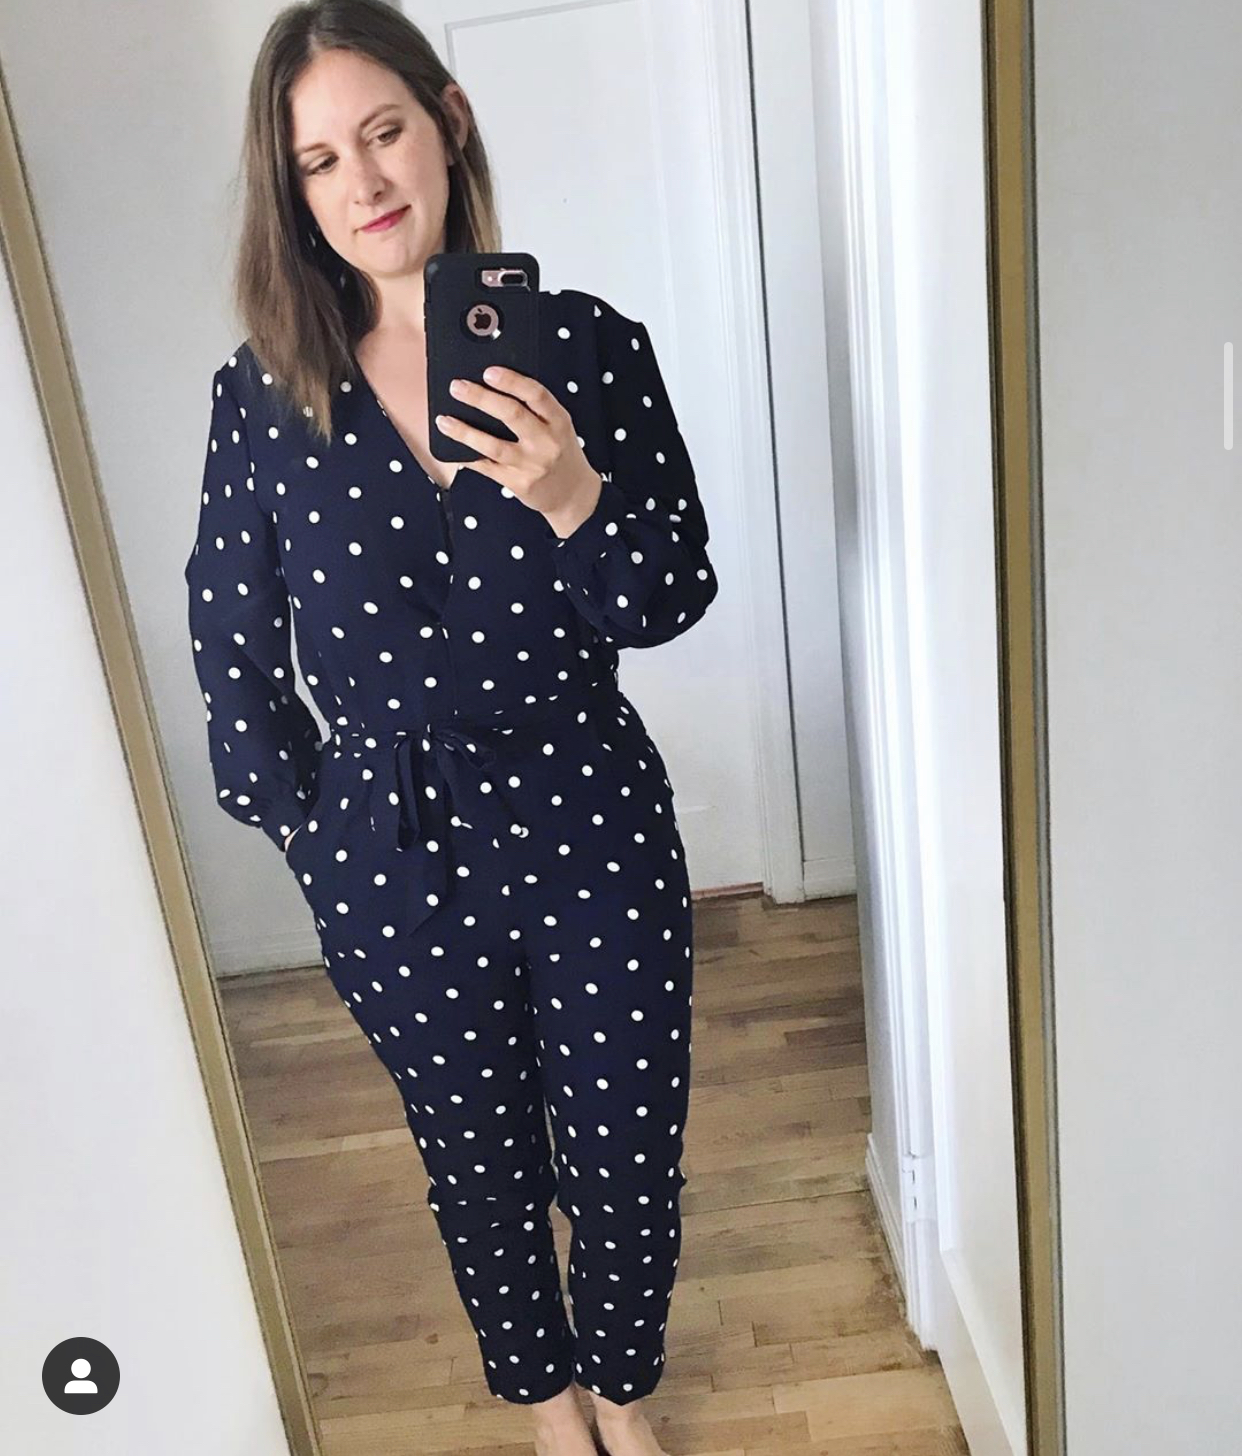 Scoop polka dot jumpsuit from Walmart - affordable fashion buys